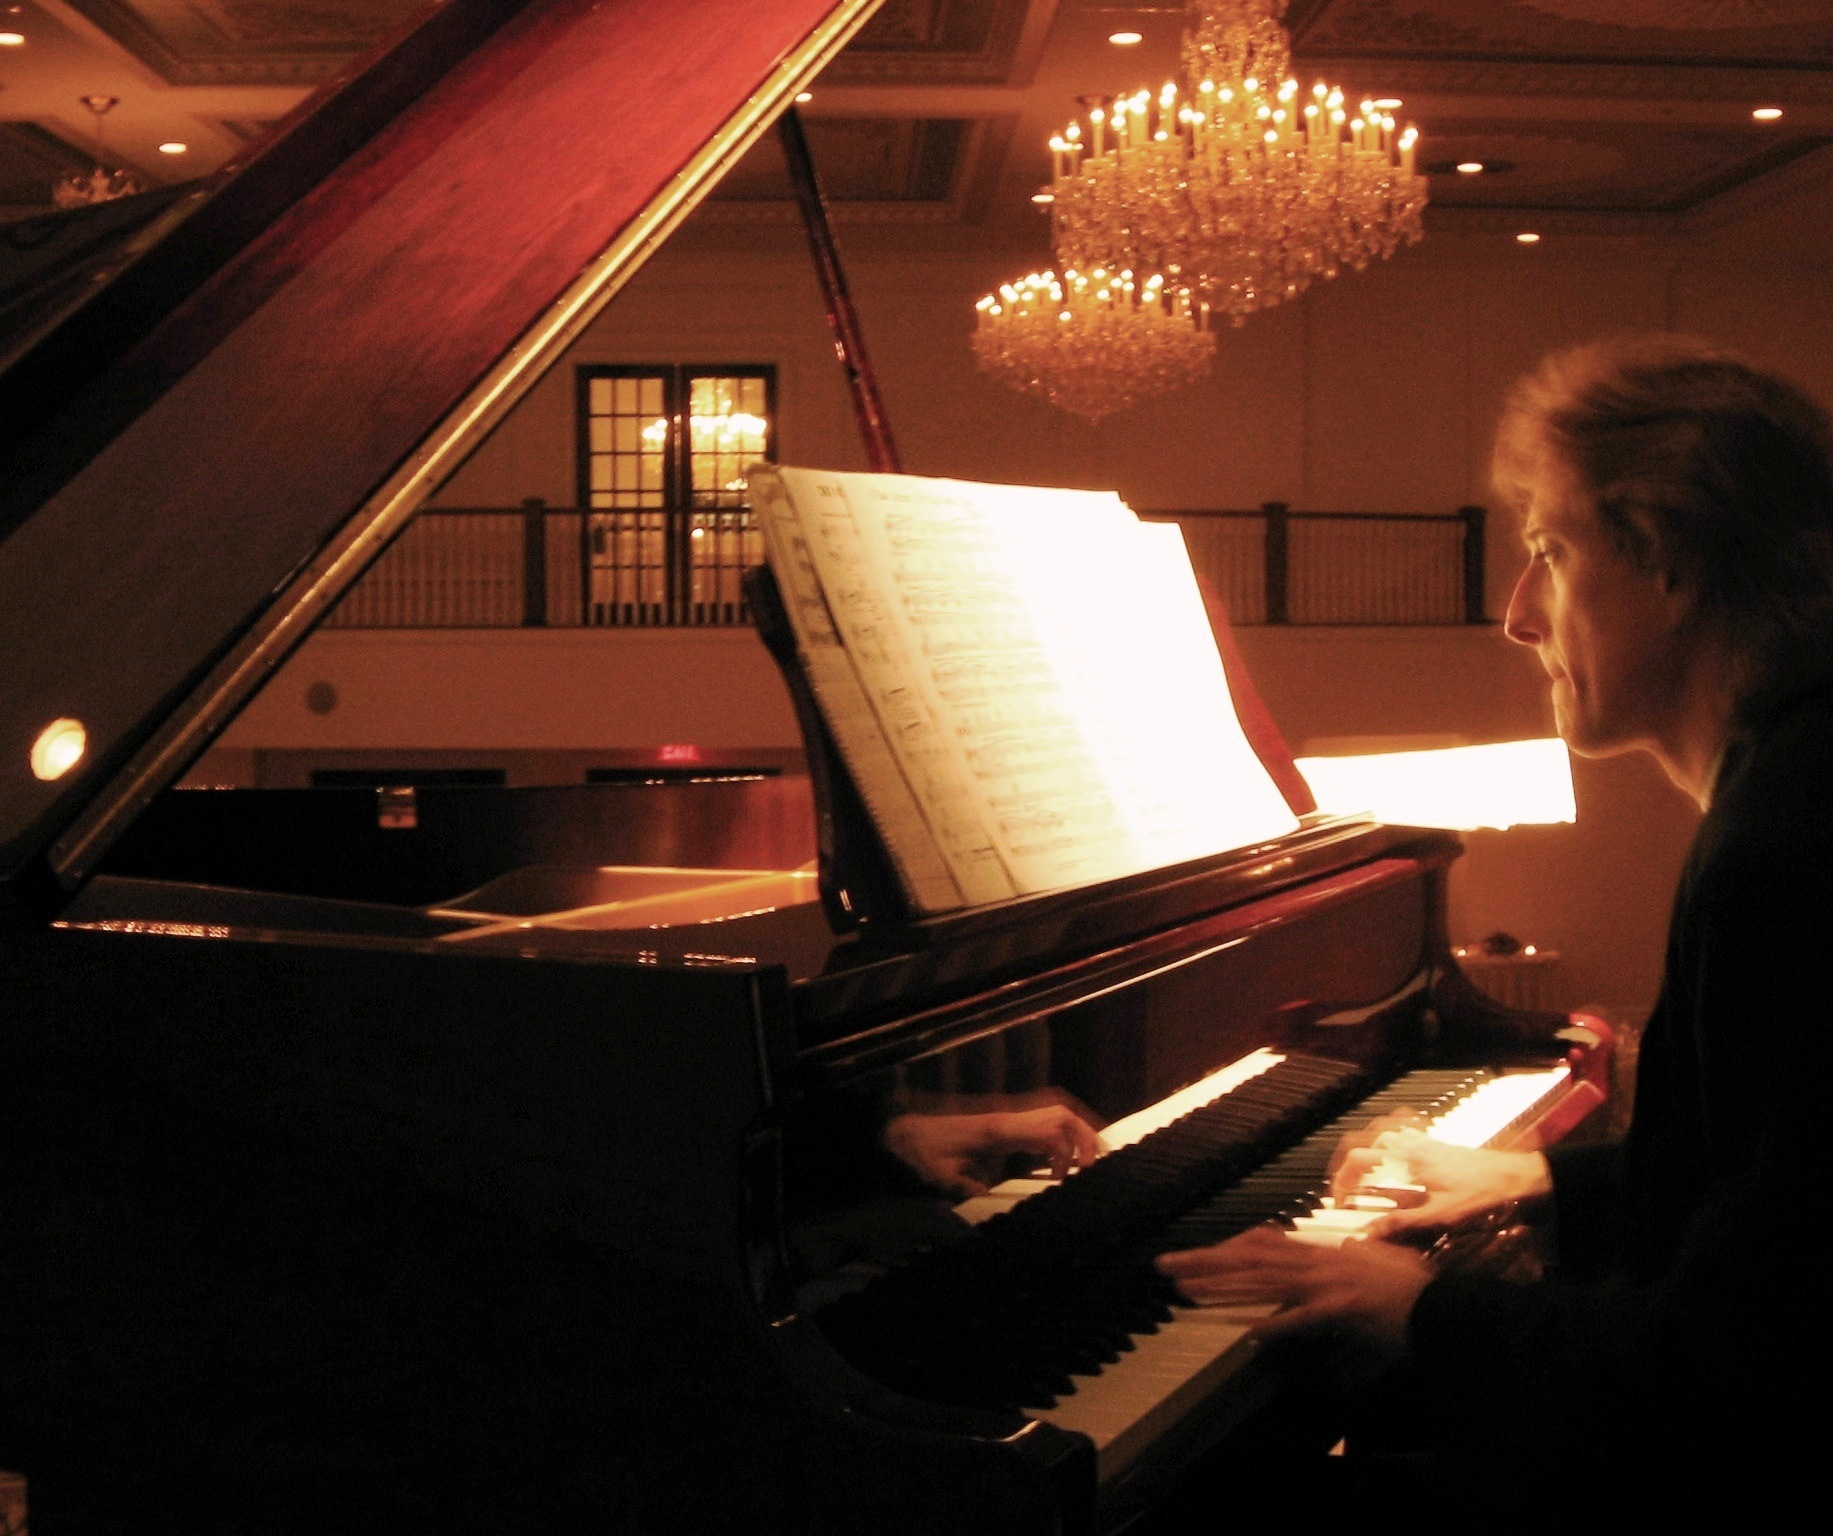 Pianist- Solo/Duos/Trios - Ceremony and Cocktail Music:Standards, Pop, Jazz, Broadway, Holiday Music and much more!for more information call (267)577-2222 or email dco@dcoevents.com